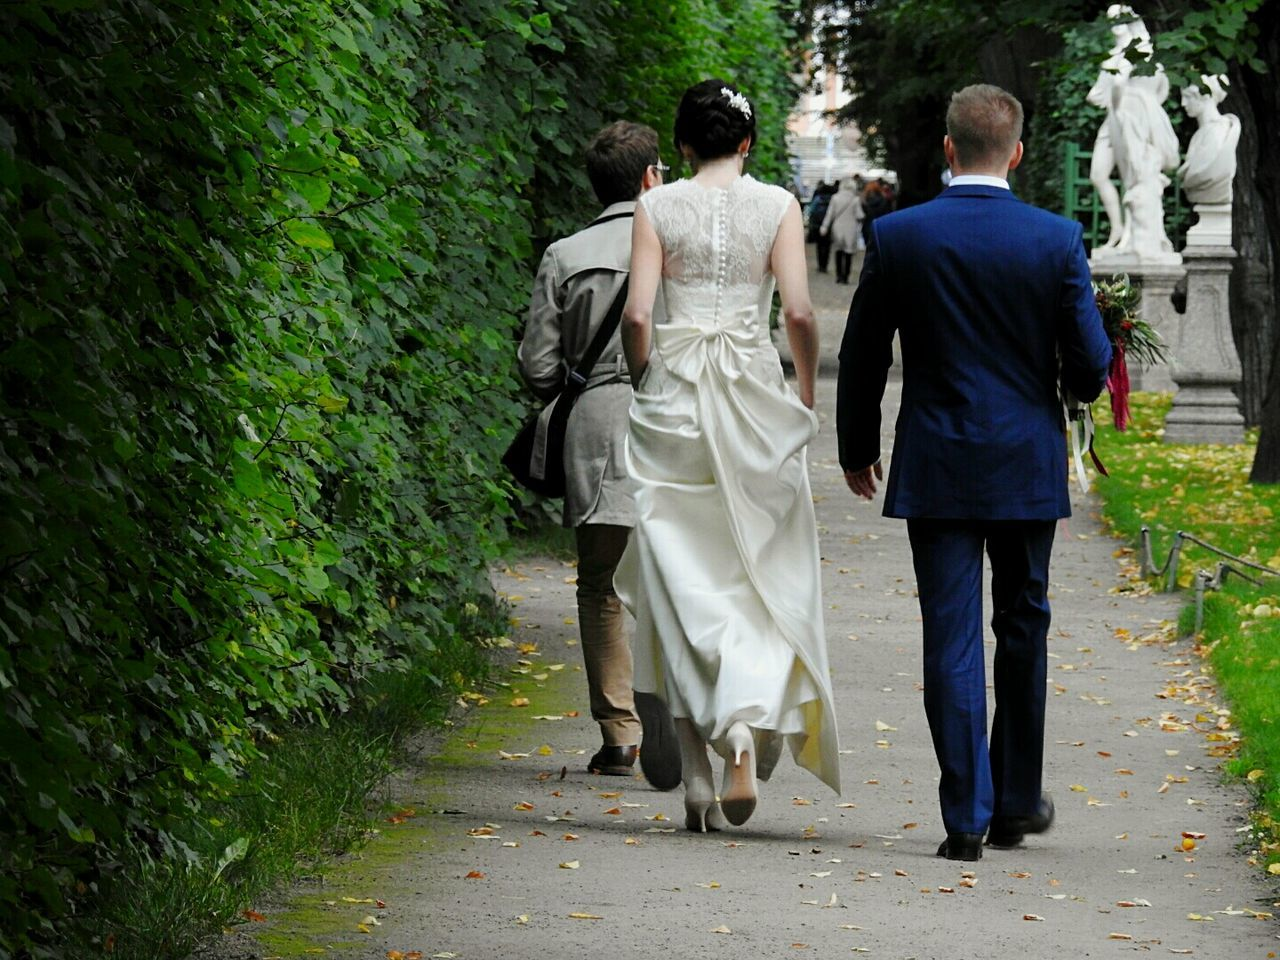 rear view, walking, full length, men, tree, togetherness, day, women, real people, outdoors, adult, people, adults only